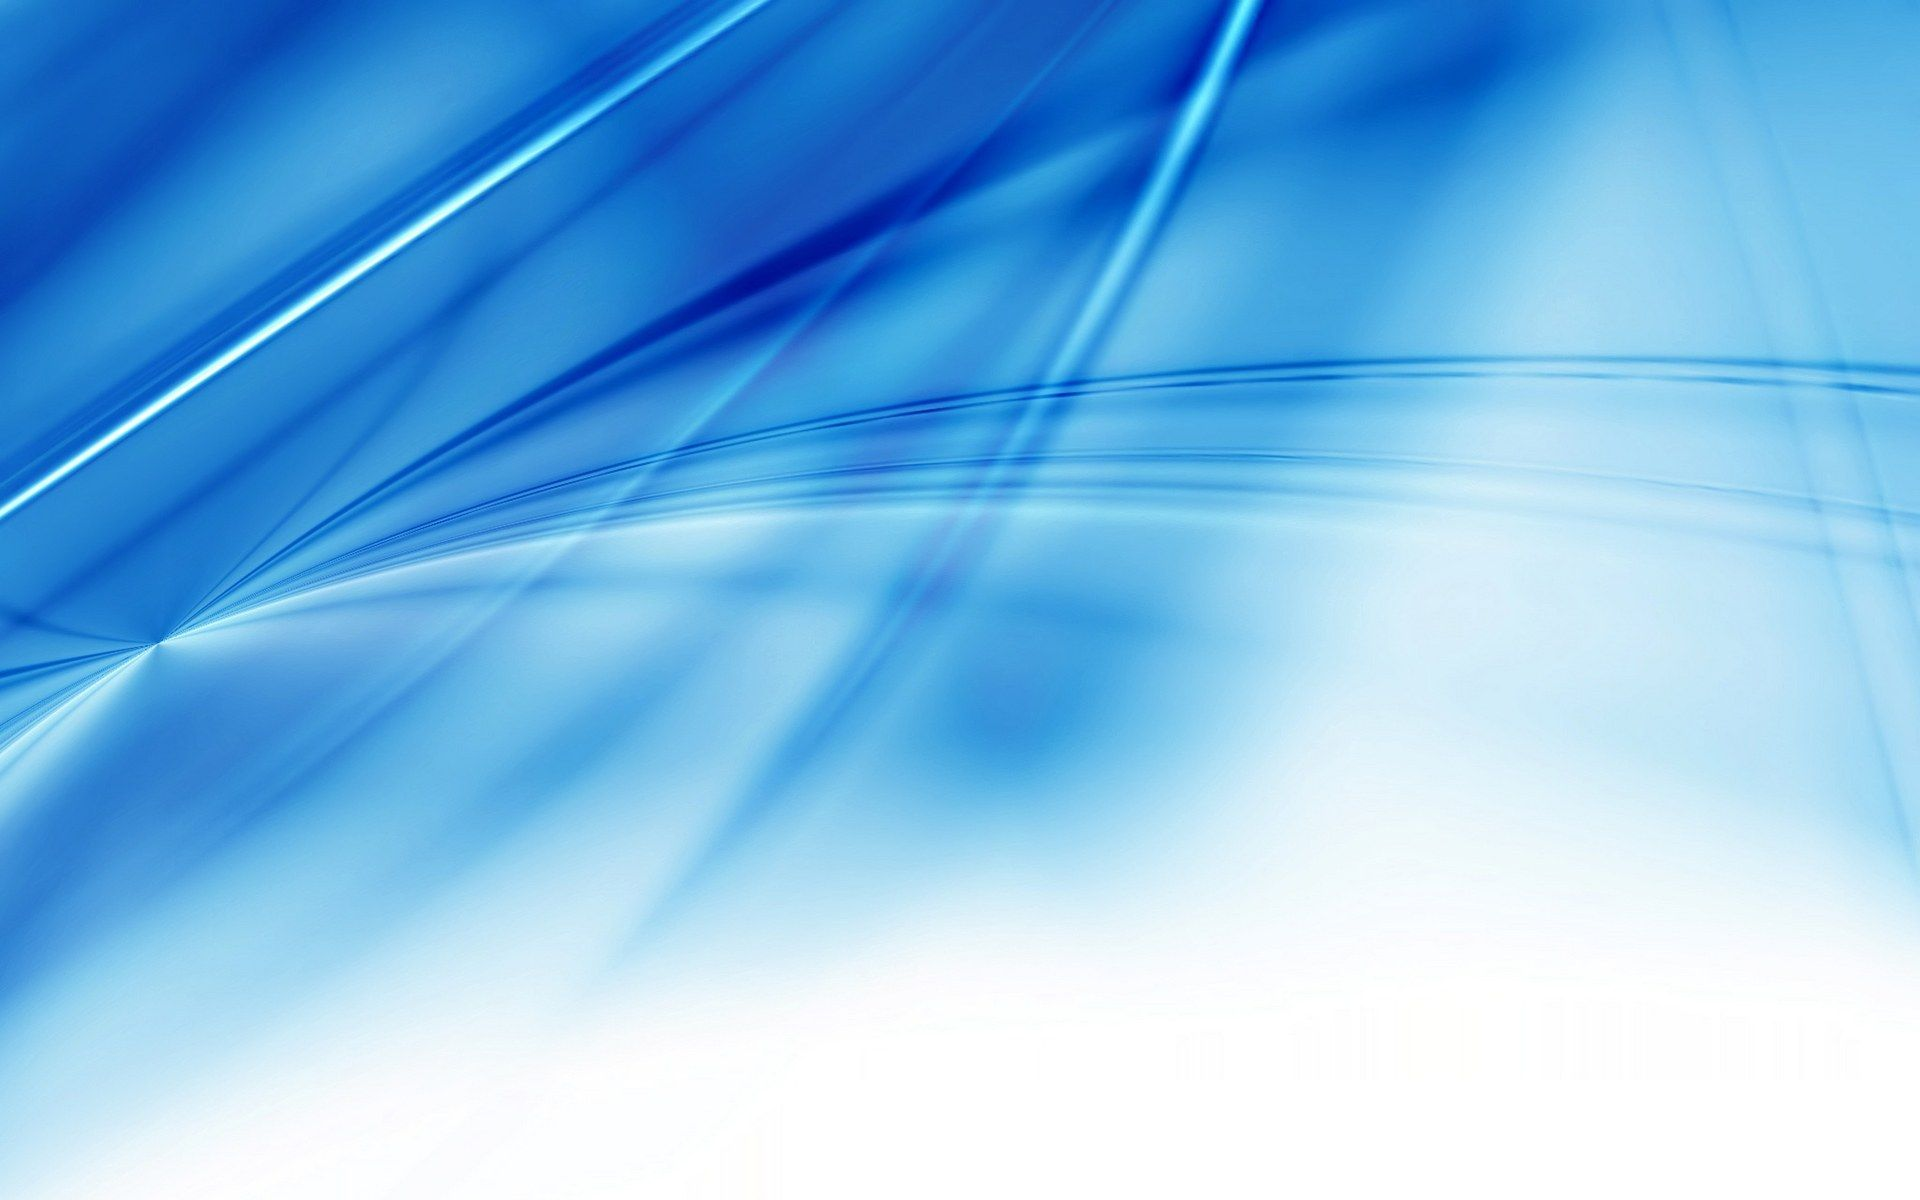 Blue Abstract Background 3158 Hd Wallpapers in Abstract - Imagesci.com | wall paper in 2019 ...